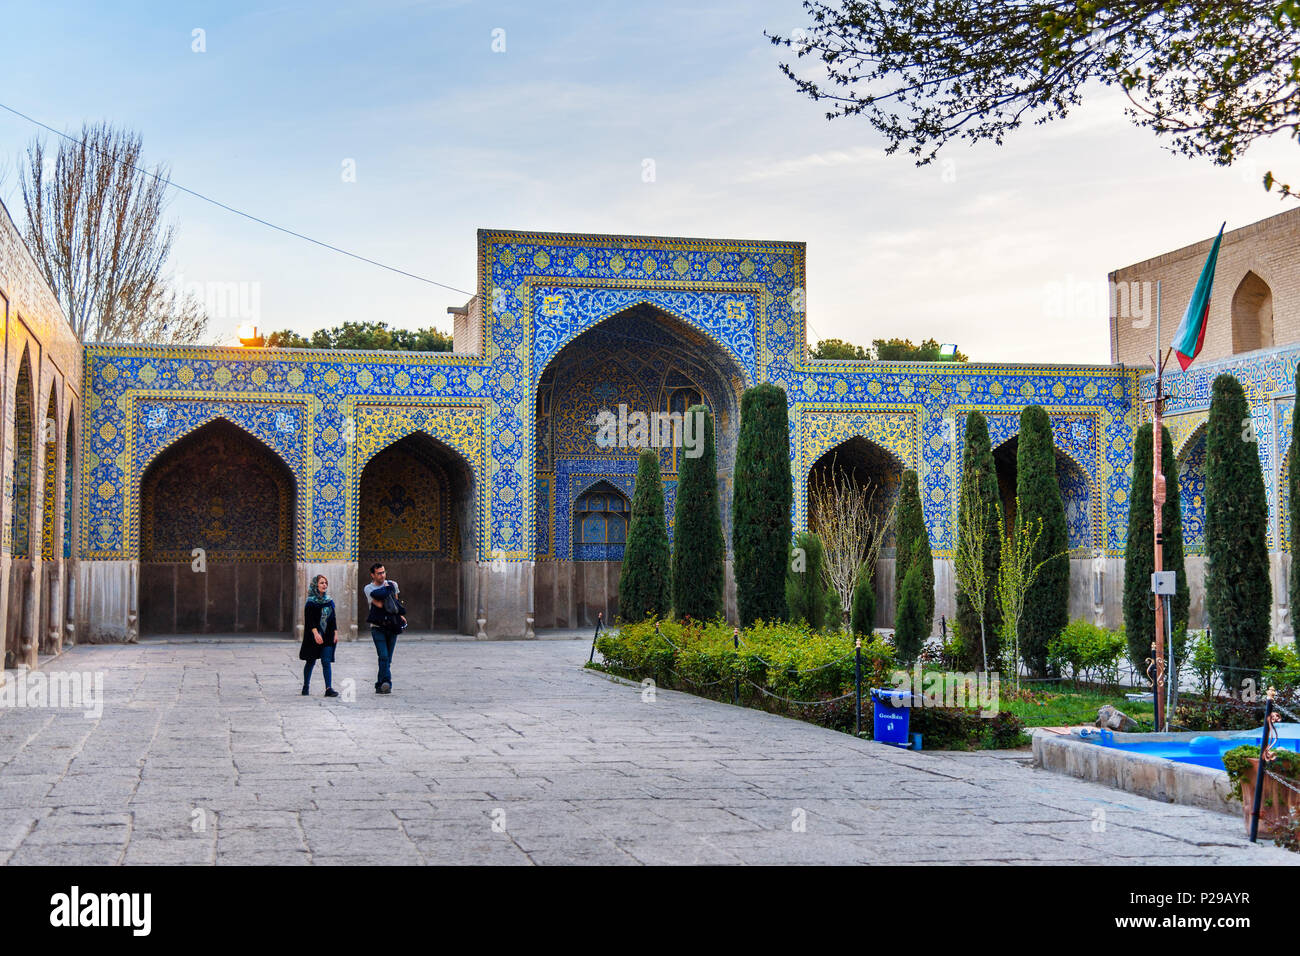 Isfahan, Iran - March 21, 2018: Garden in the territory of Shah Mosque or Imam Mosque - Stock Image